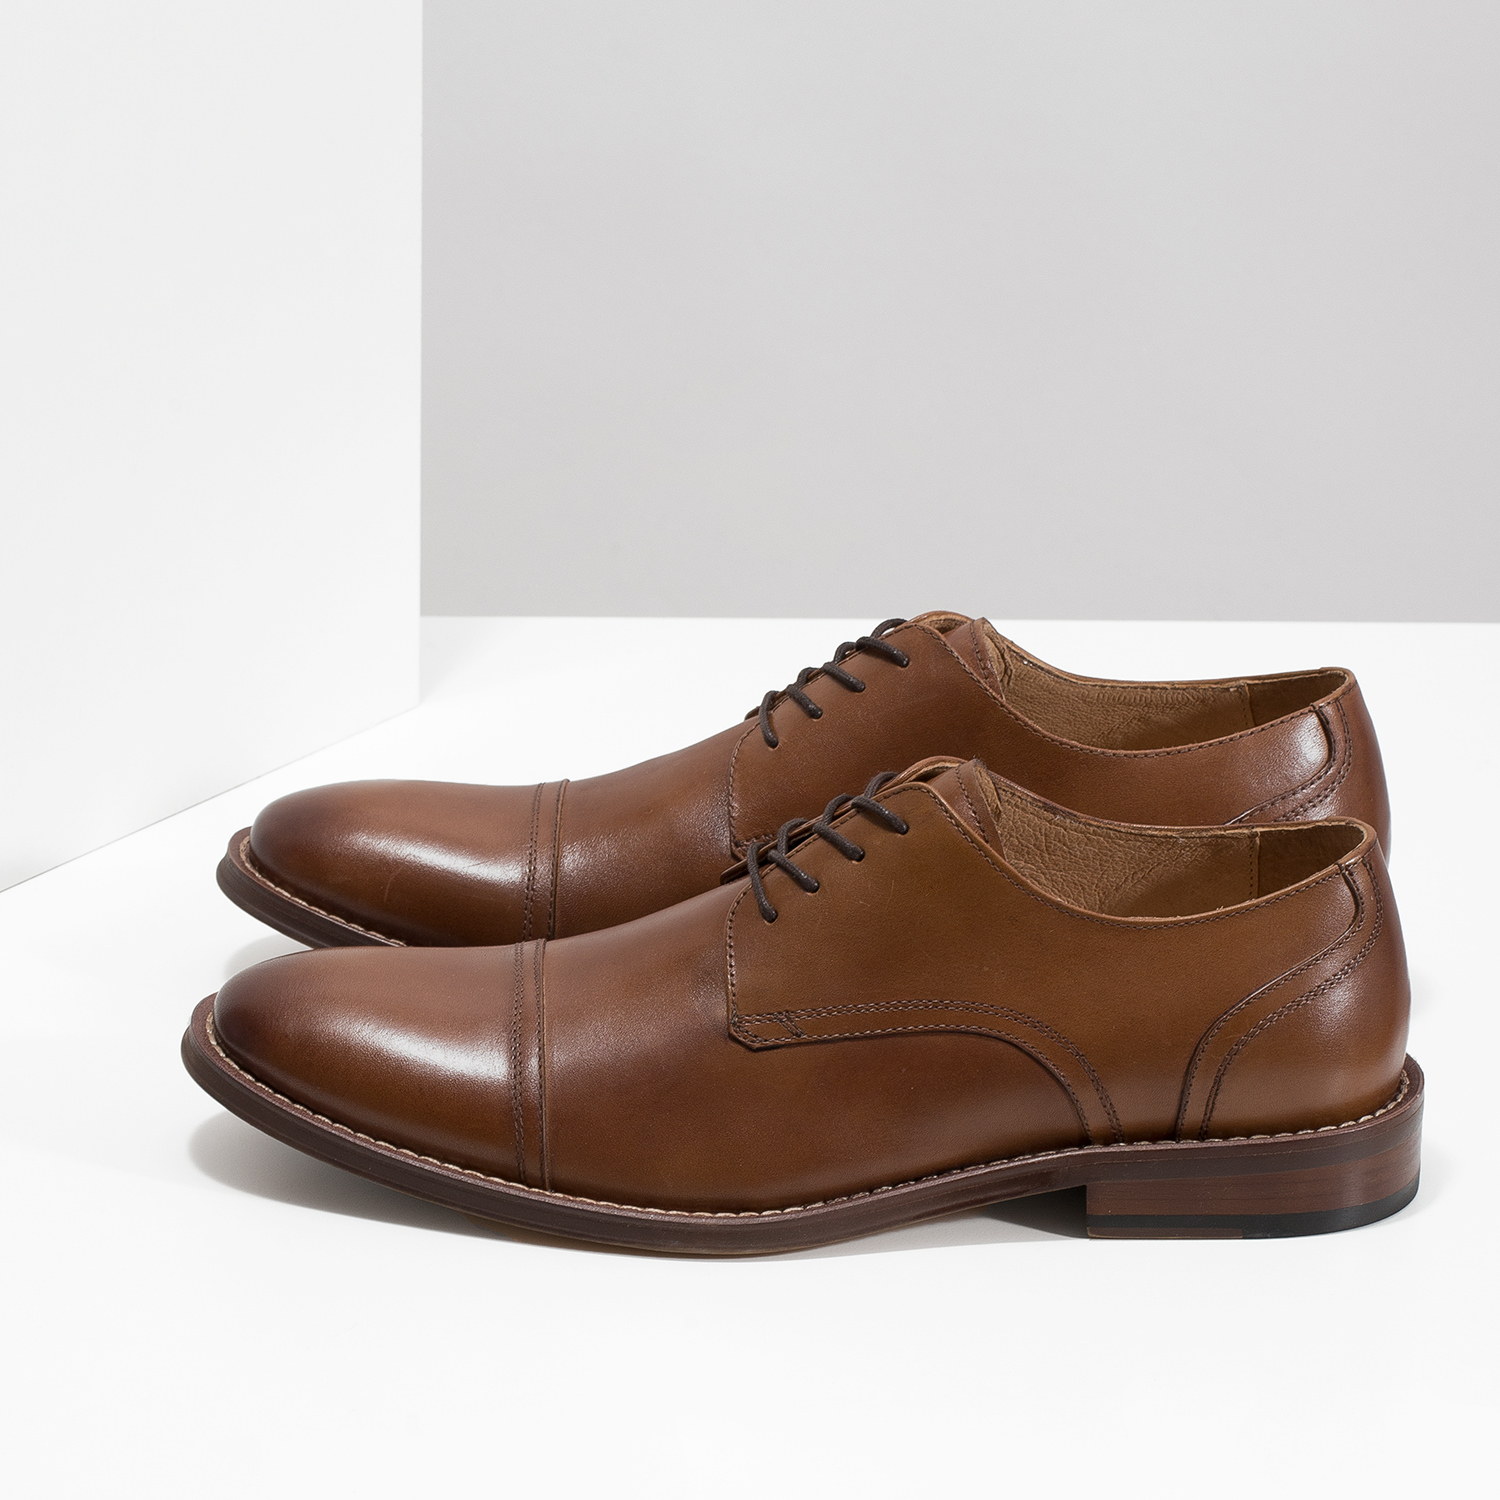 47753dcc36 Bata Brown leather Derby-style shoes - Dress